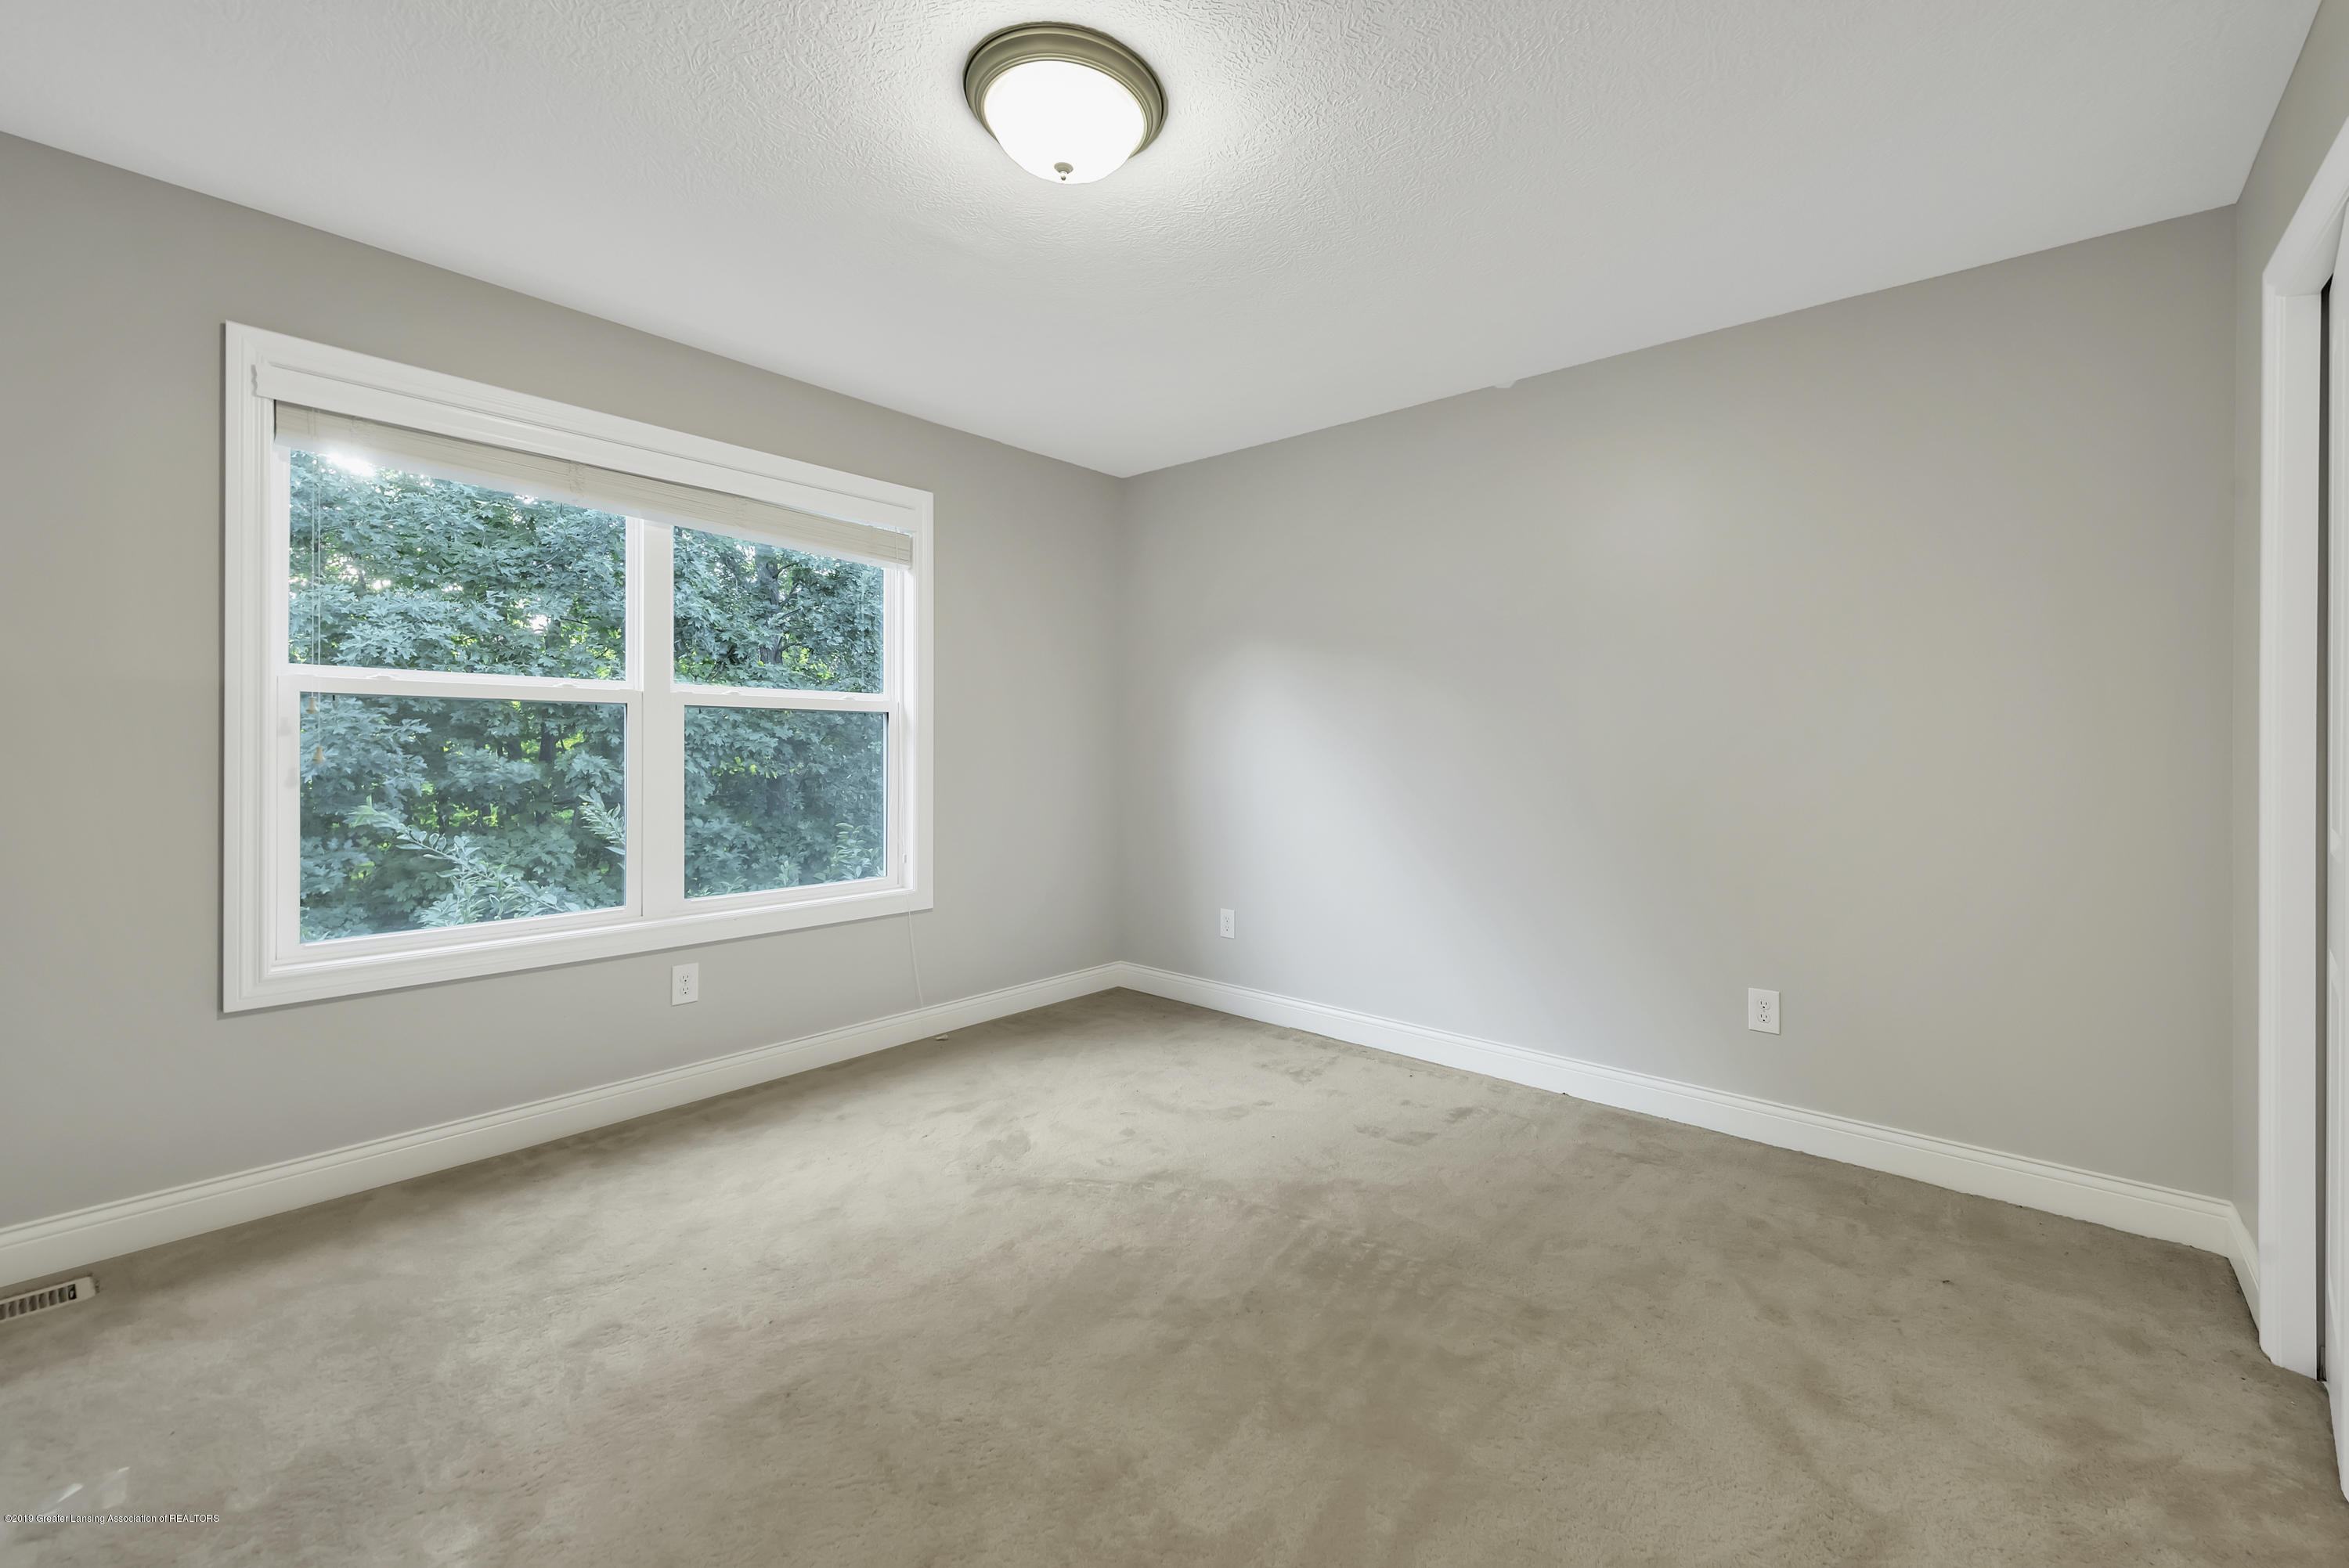 4229 Rain Forest Cir - 4229-Rainforest-Circle-Okemos-MI-windows - 39